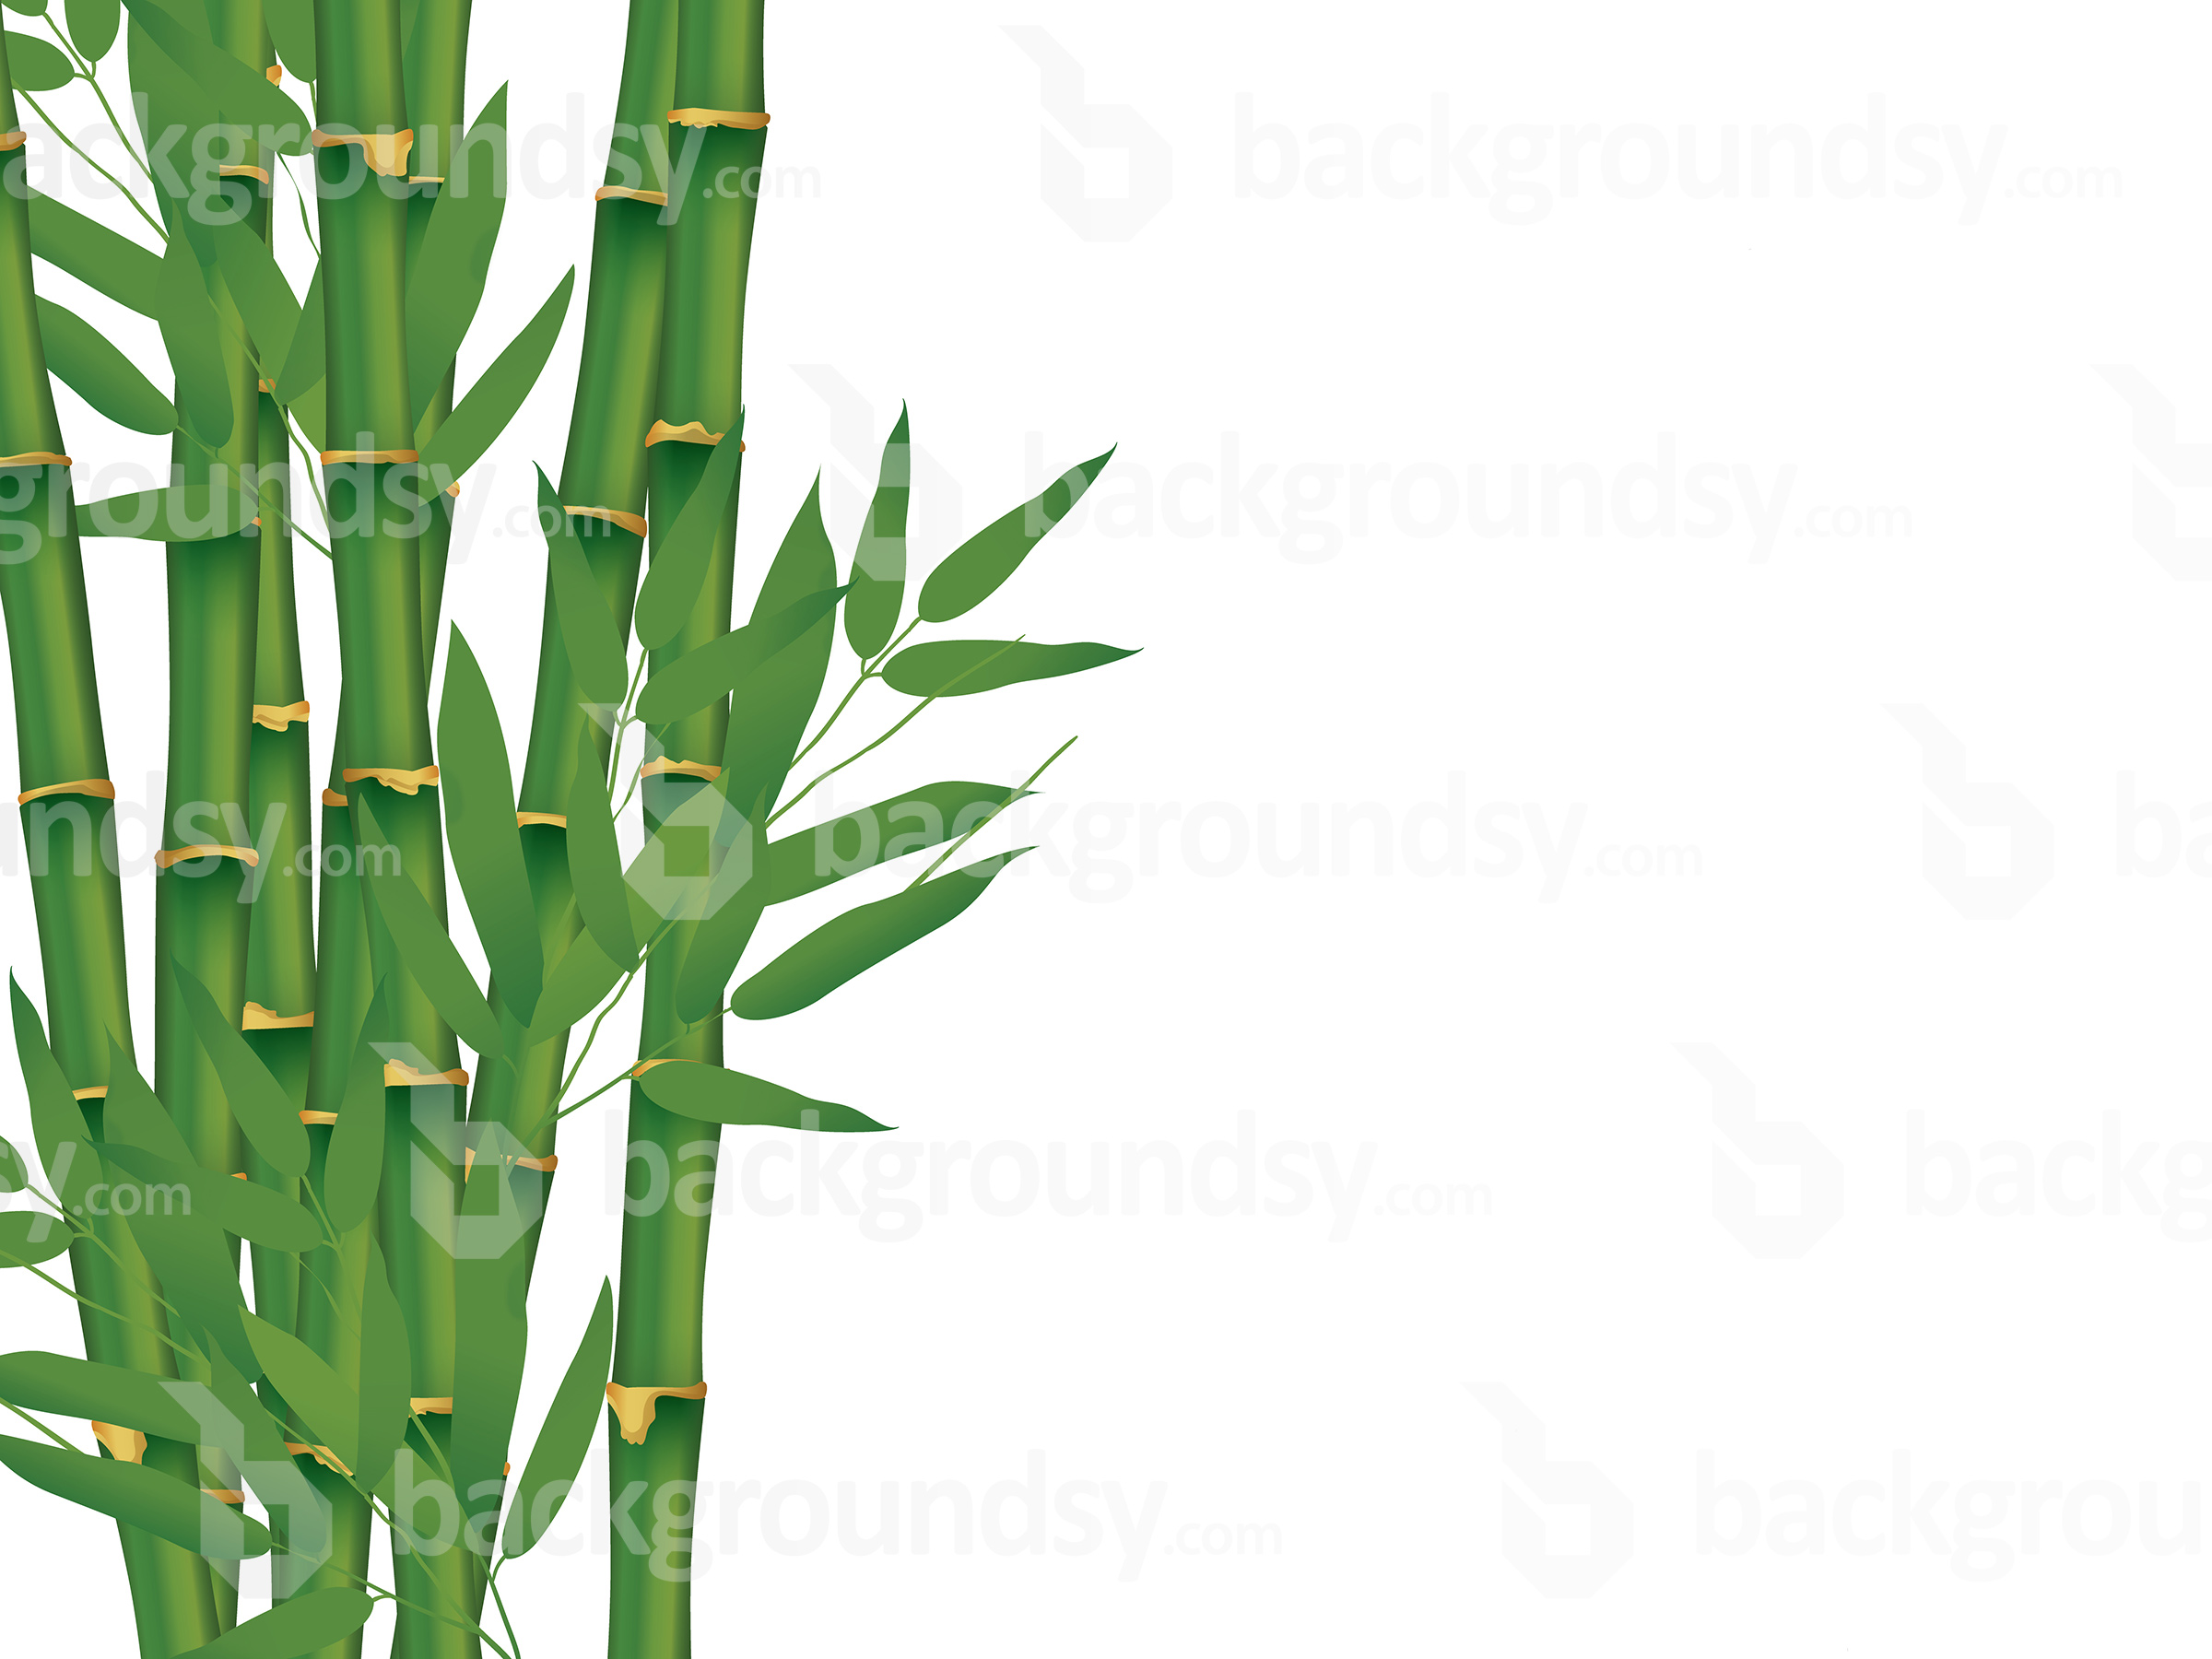 Isolated bamboo background photo